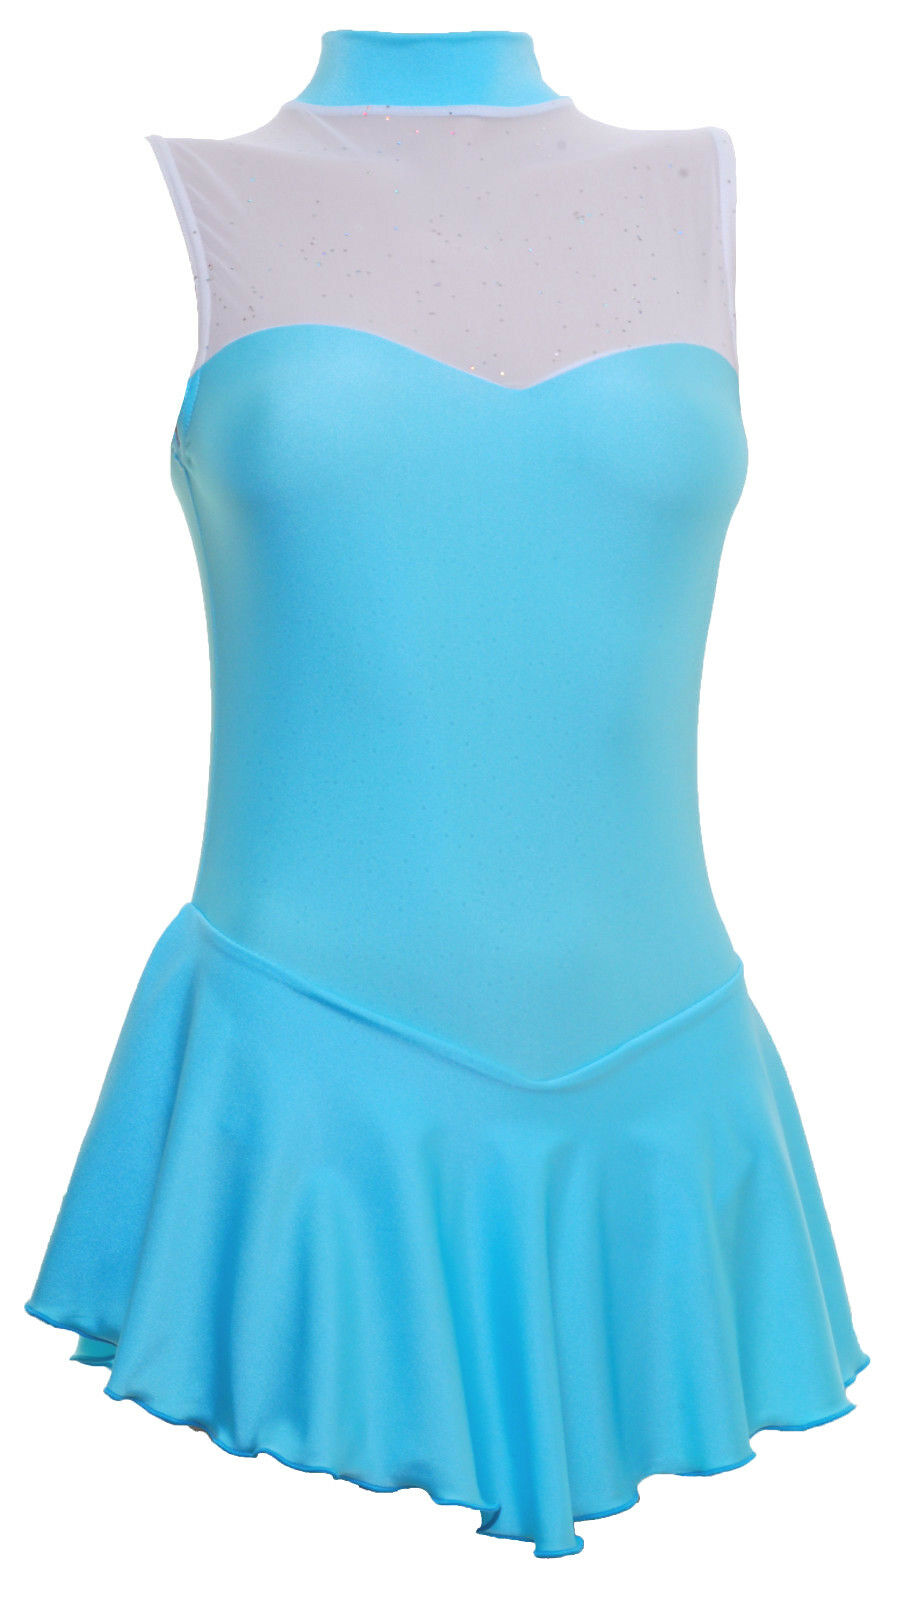 Skating Dress -AQUA LYCRA GLITTER MIST - SLEEVELESS ALL SIZES AVAILABLE